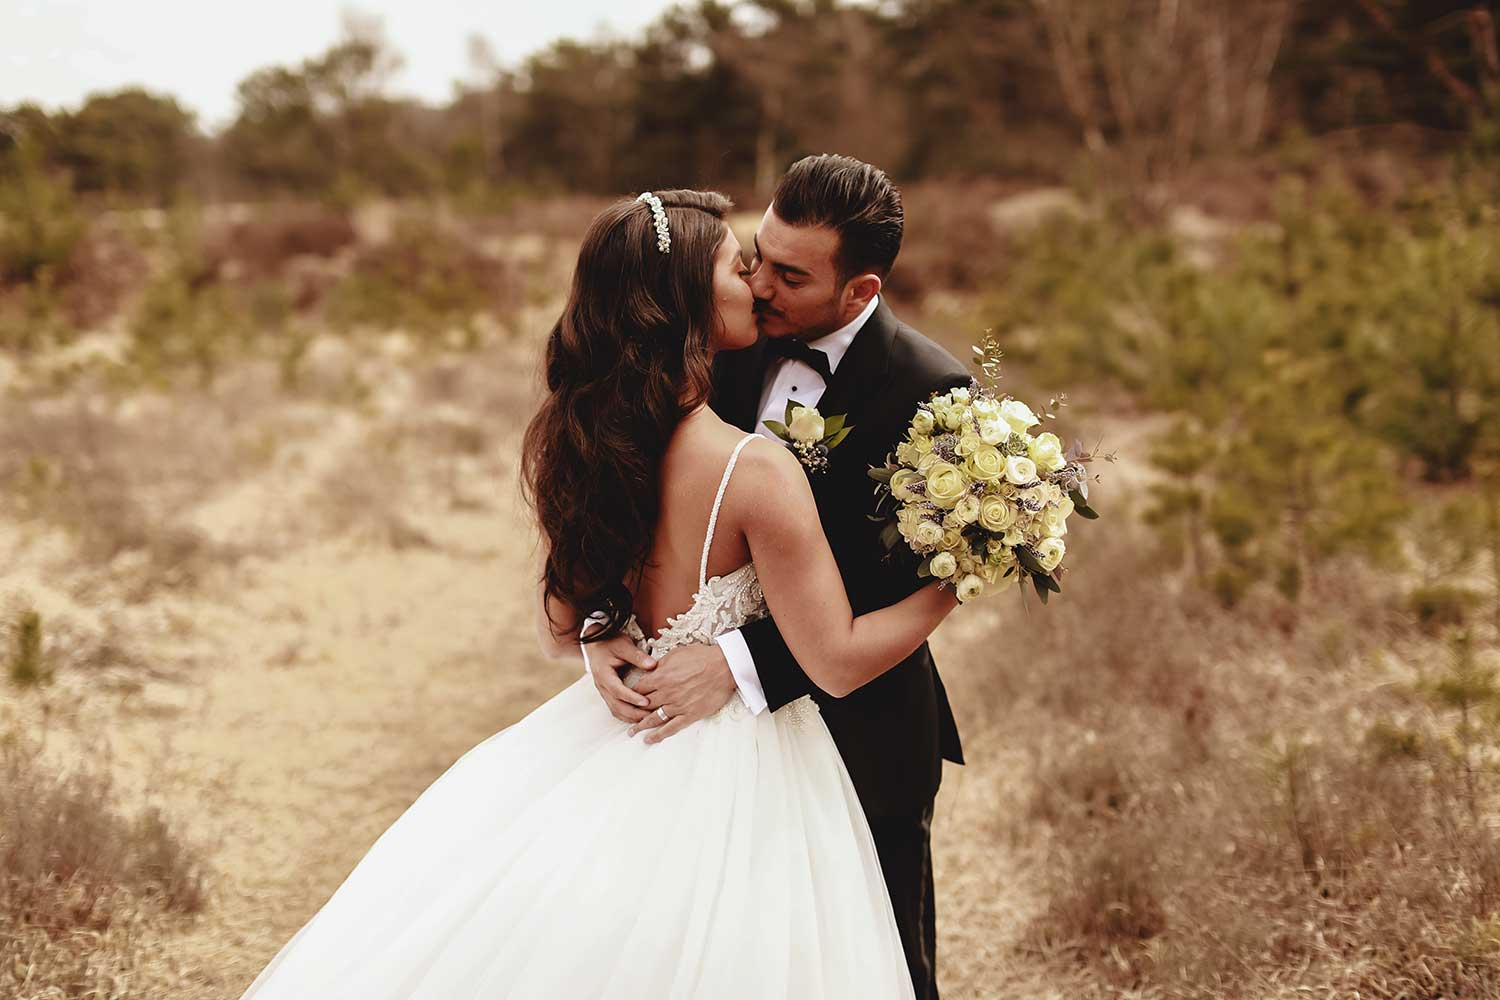 The couple kissing